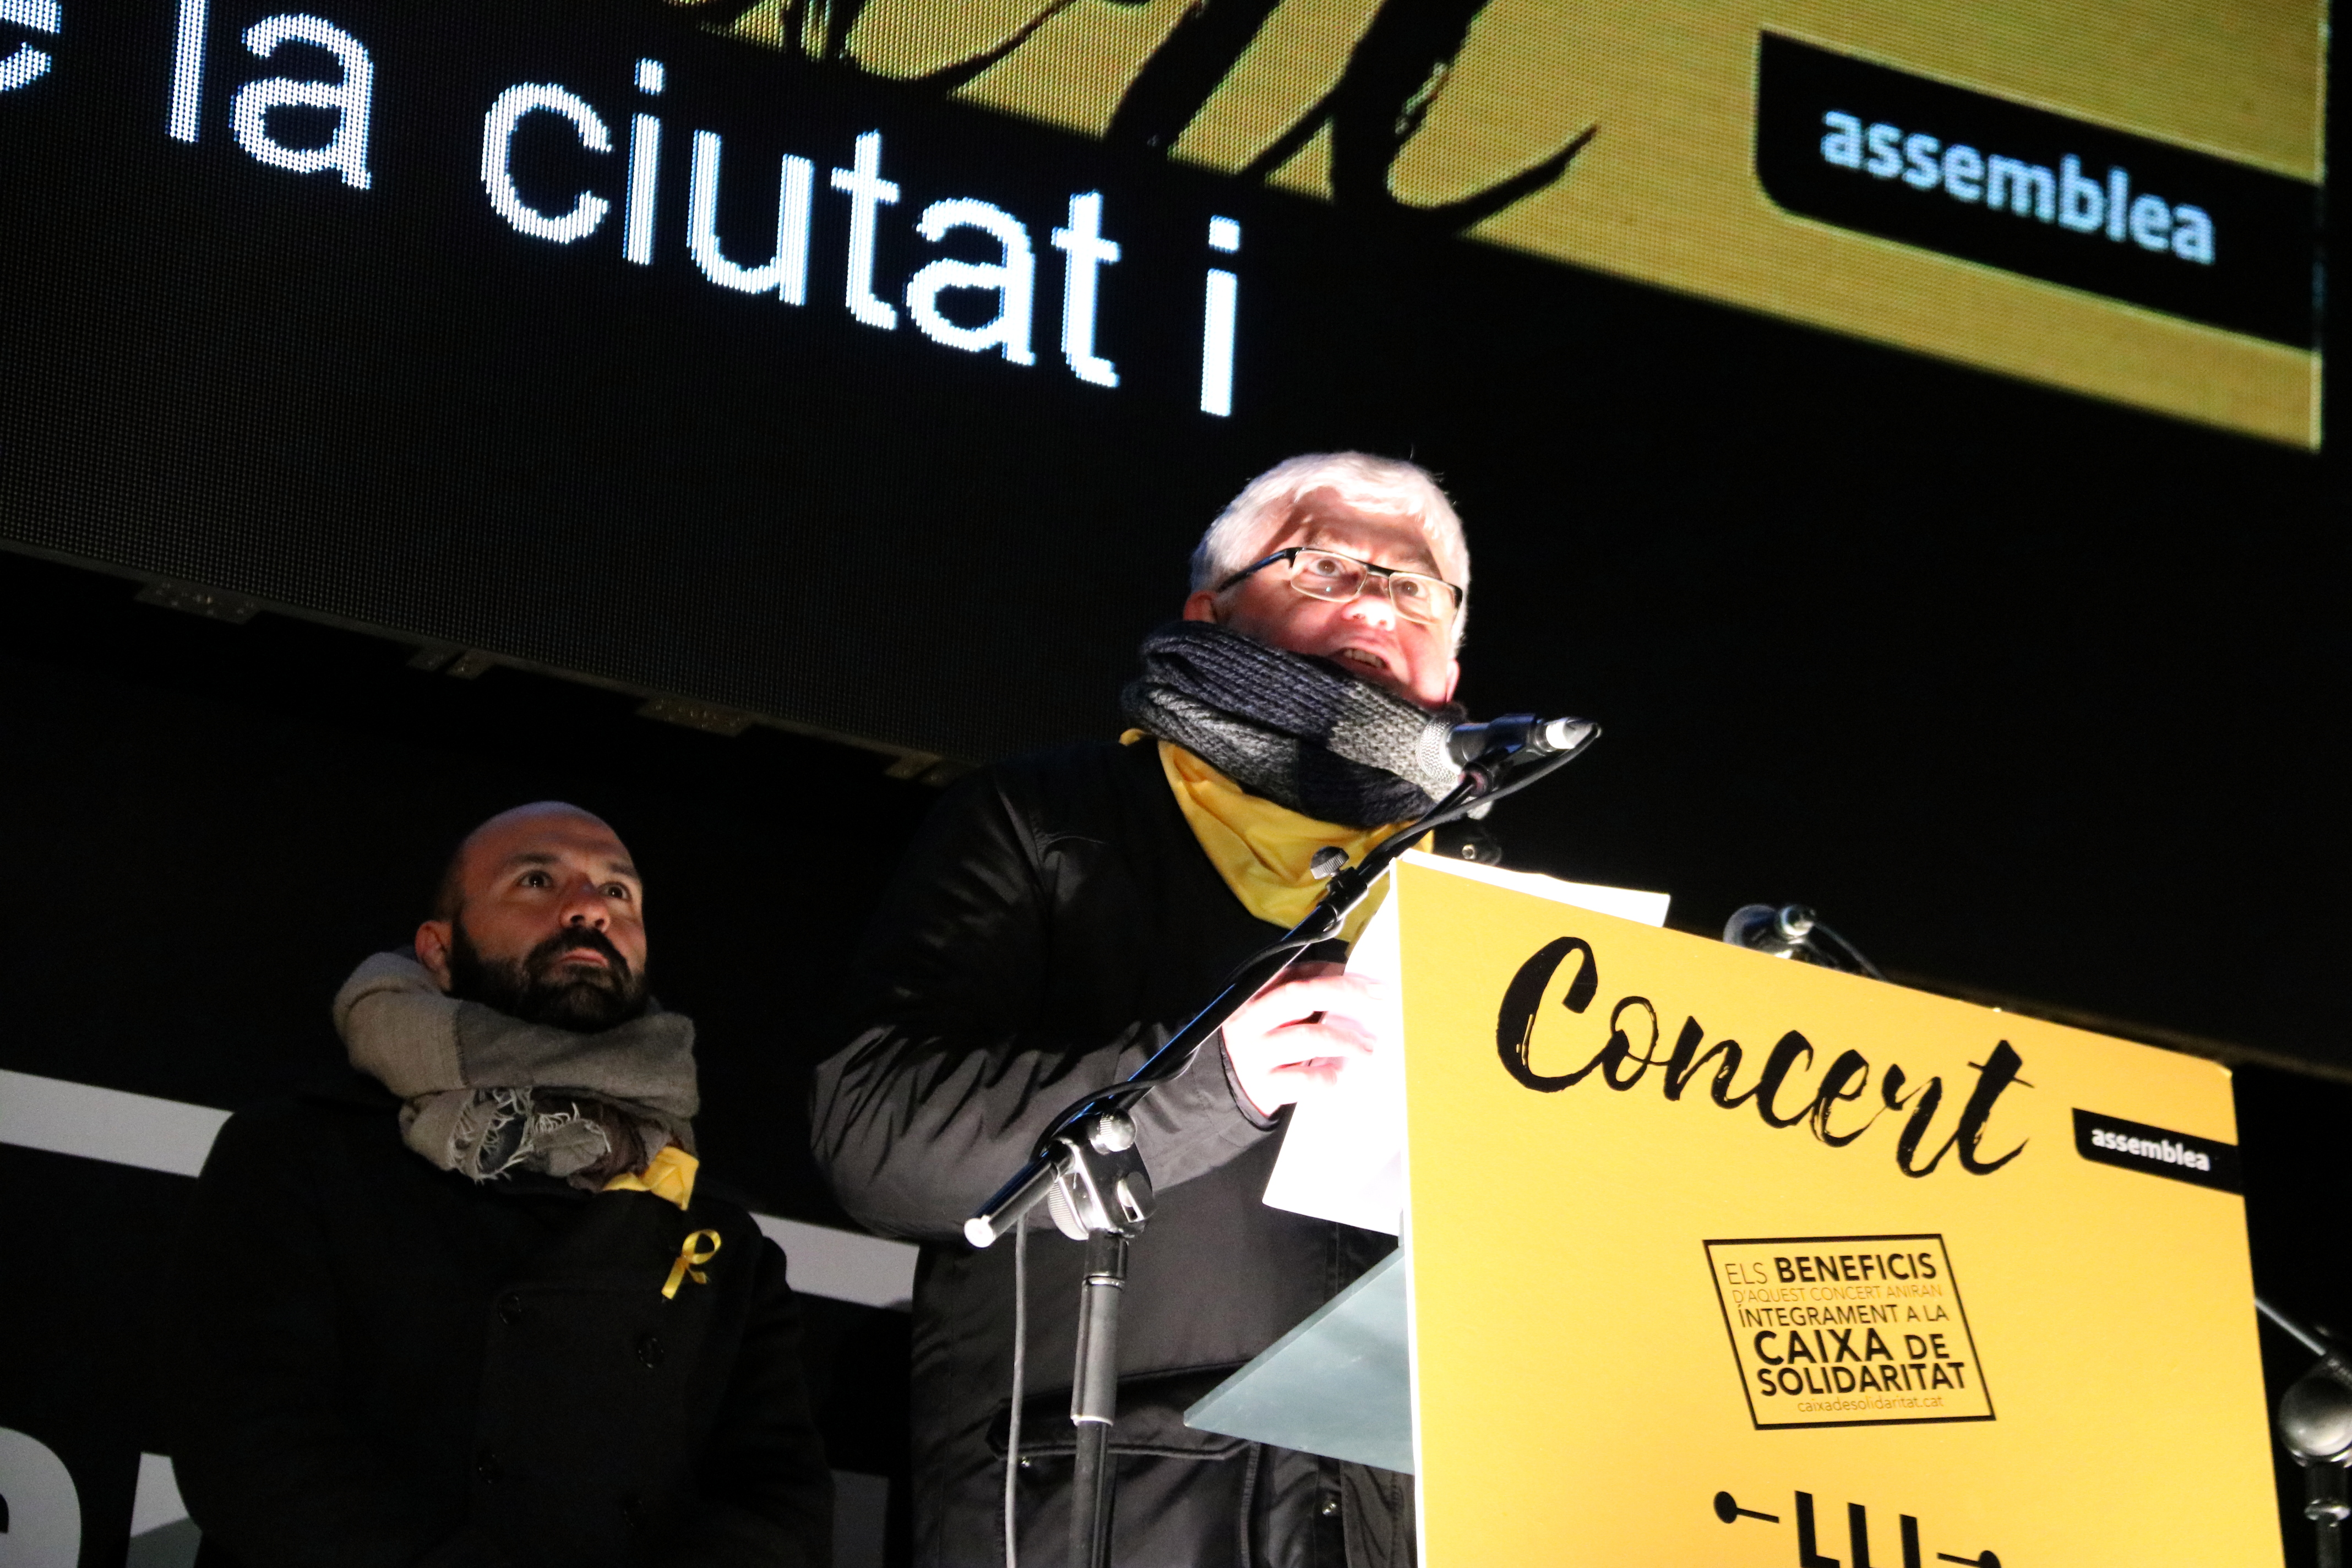 Augustí Alcoberro and Marcel Mauri, vice presidents of the ANC and Òmnium Cultural respectively, speak at the 'Concert for the Freedom of Political Prisoners'  (by Júlia Pérez)